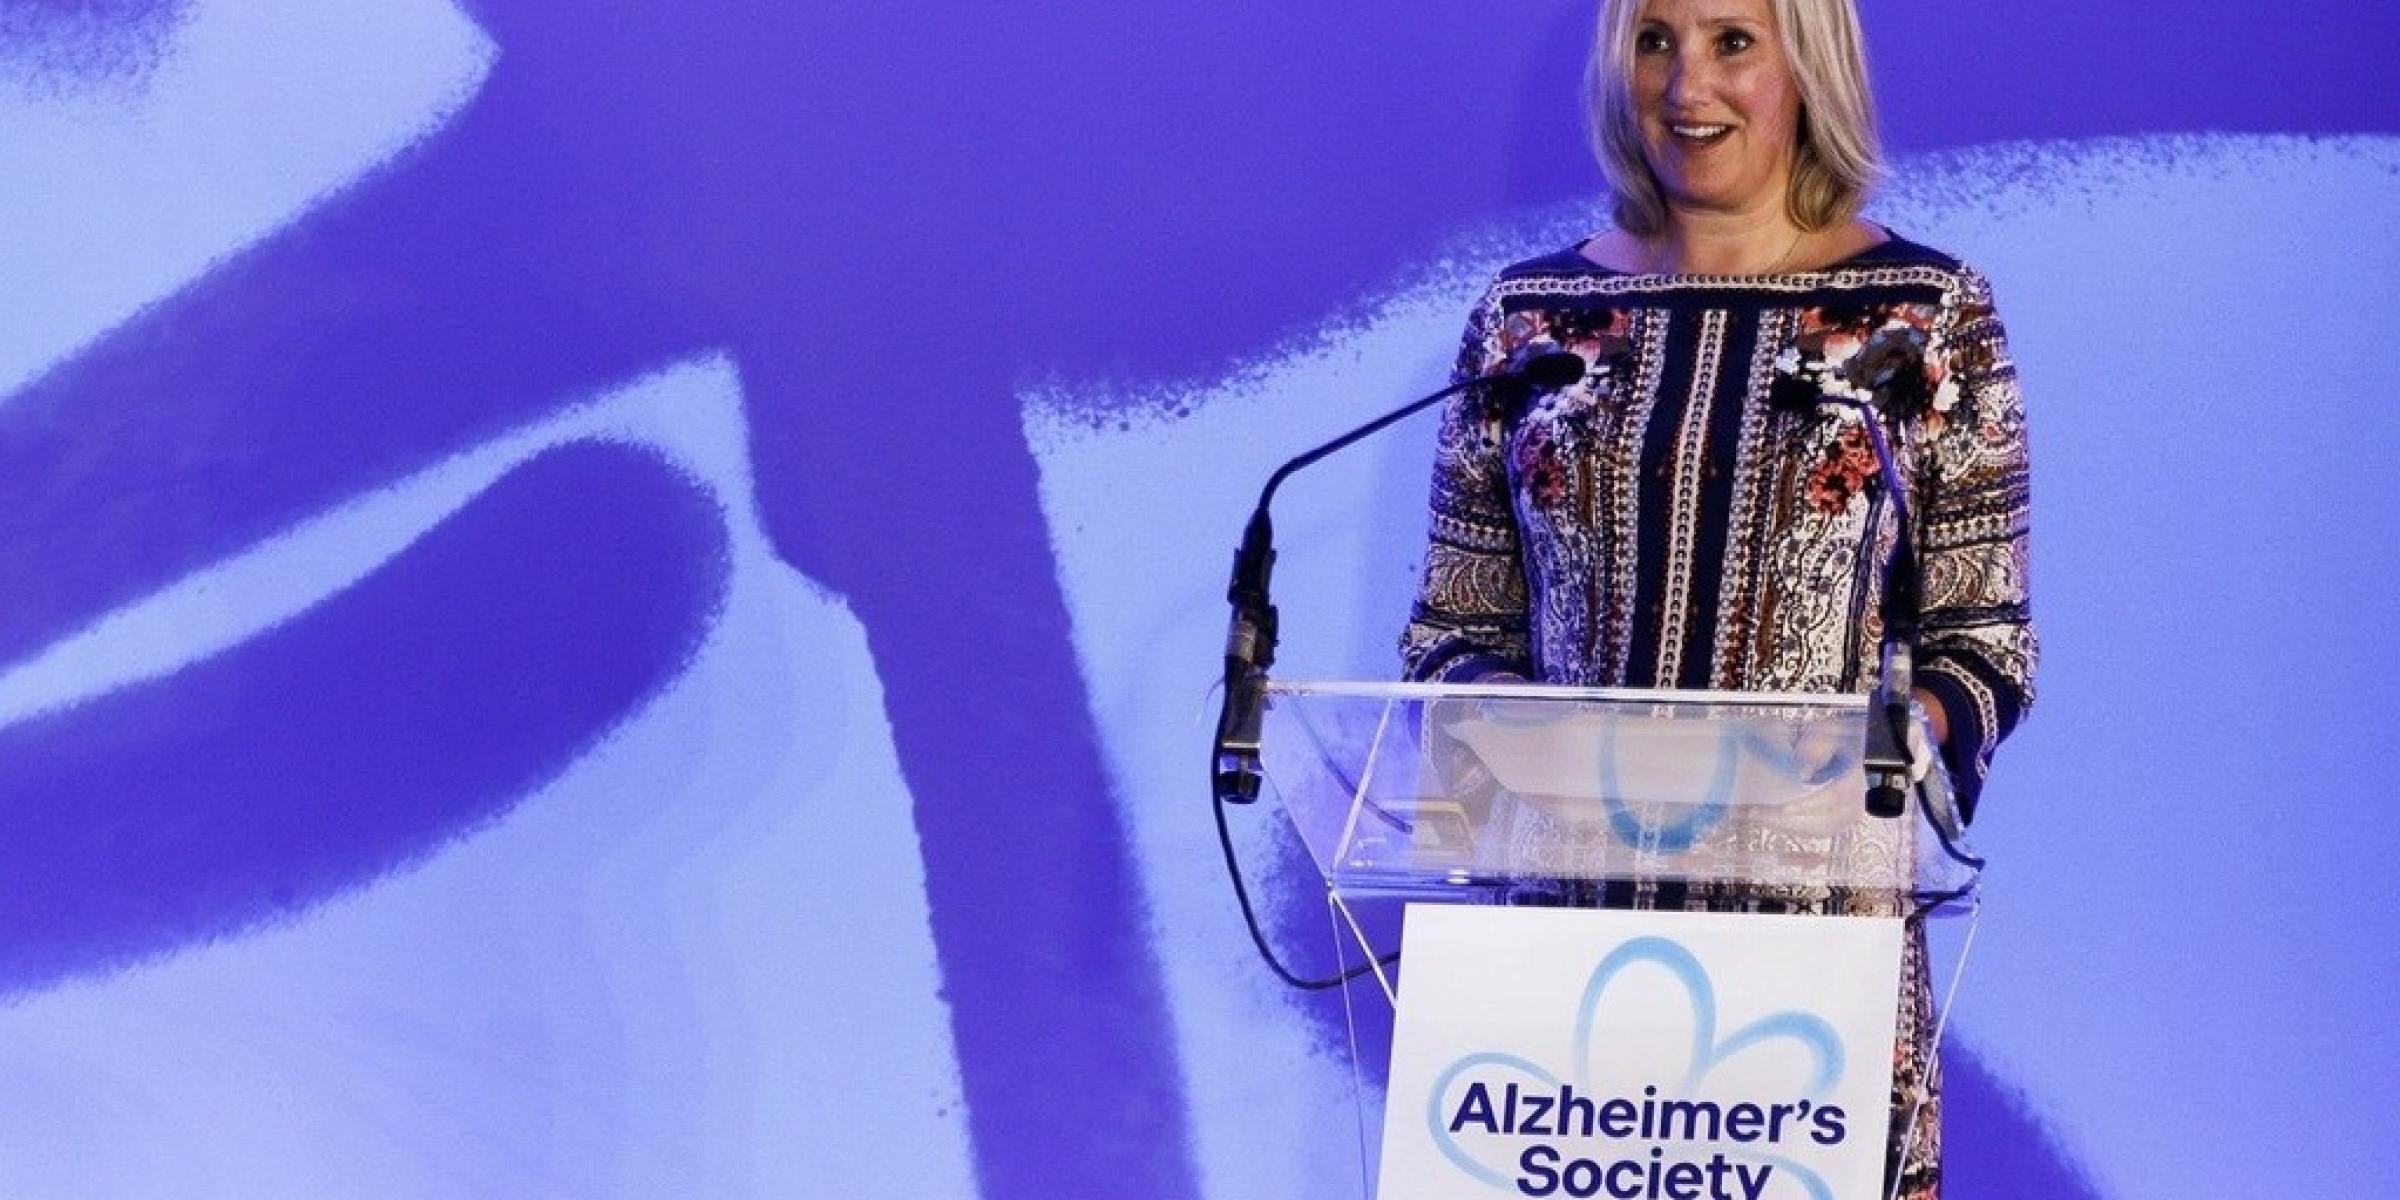 Minister for Care Caroline Dineage speaks about Alzheimer's Society for Dementia Action Week - blog